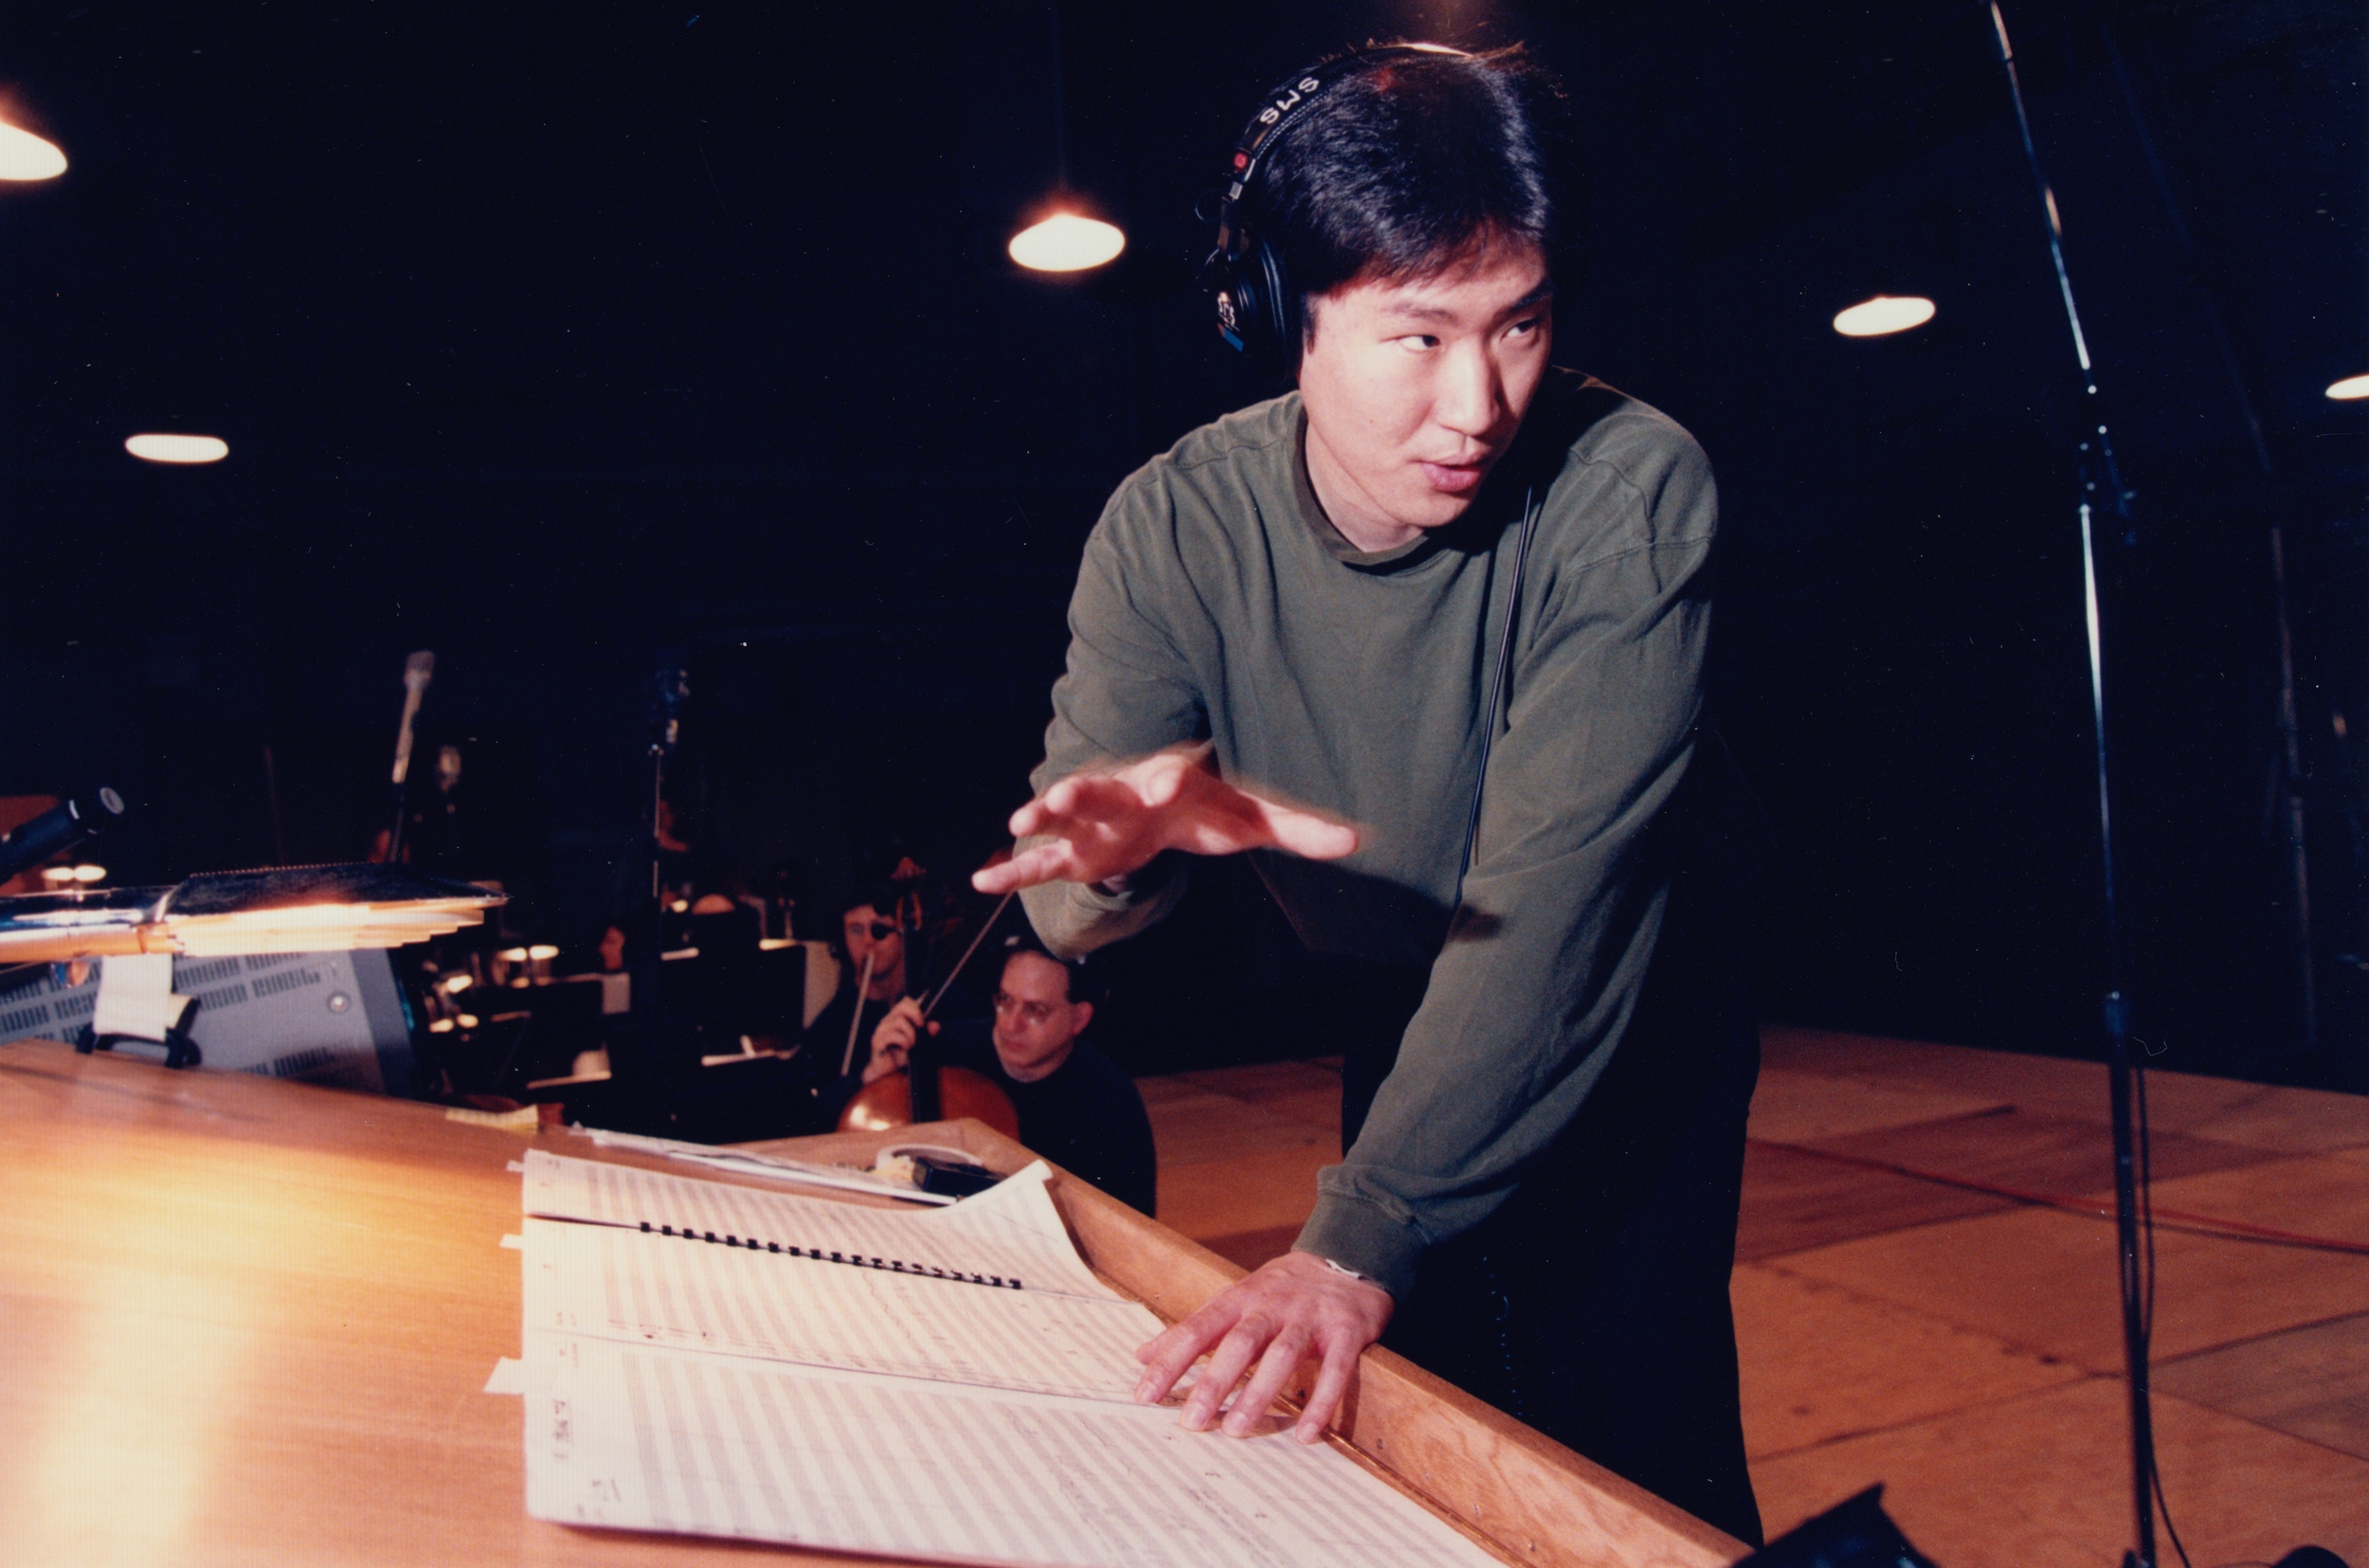 Edmund_Choi_Wide_Awake_Conducting_03.jpg